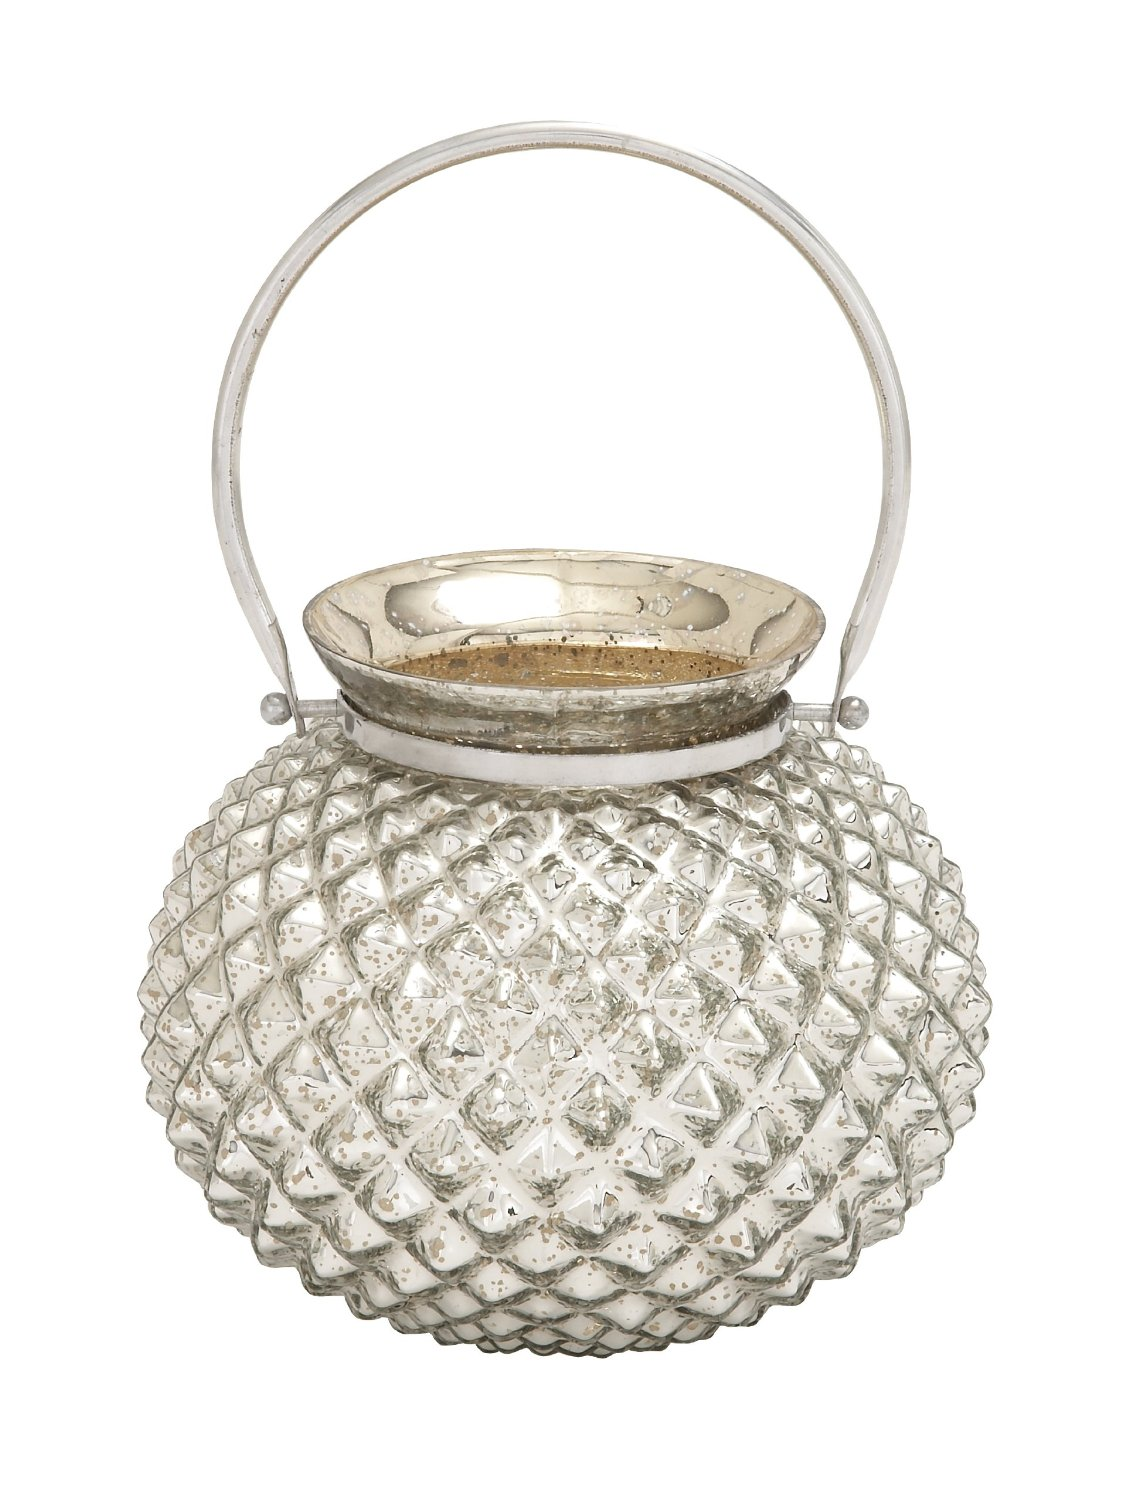 Plutus Brands Striking Attractive Styled Glass Metal Accent